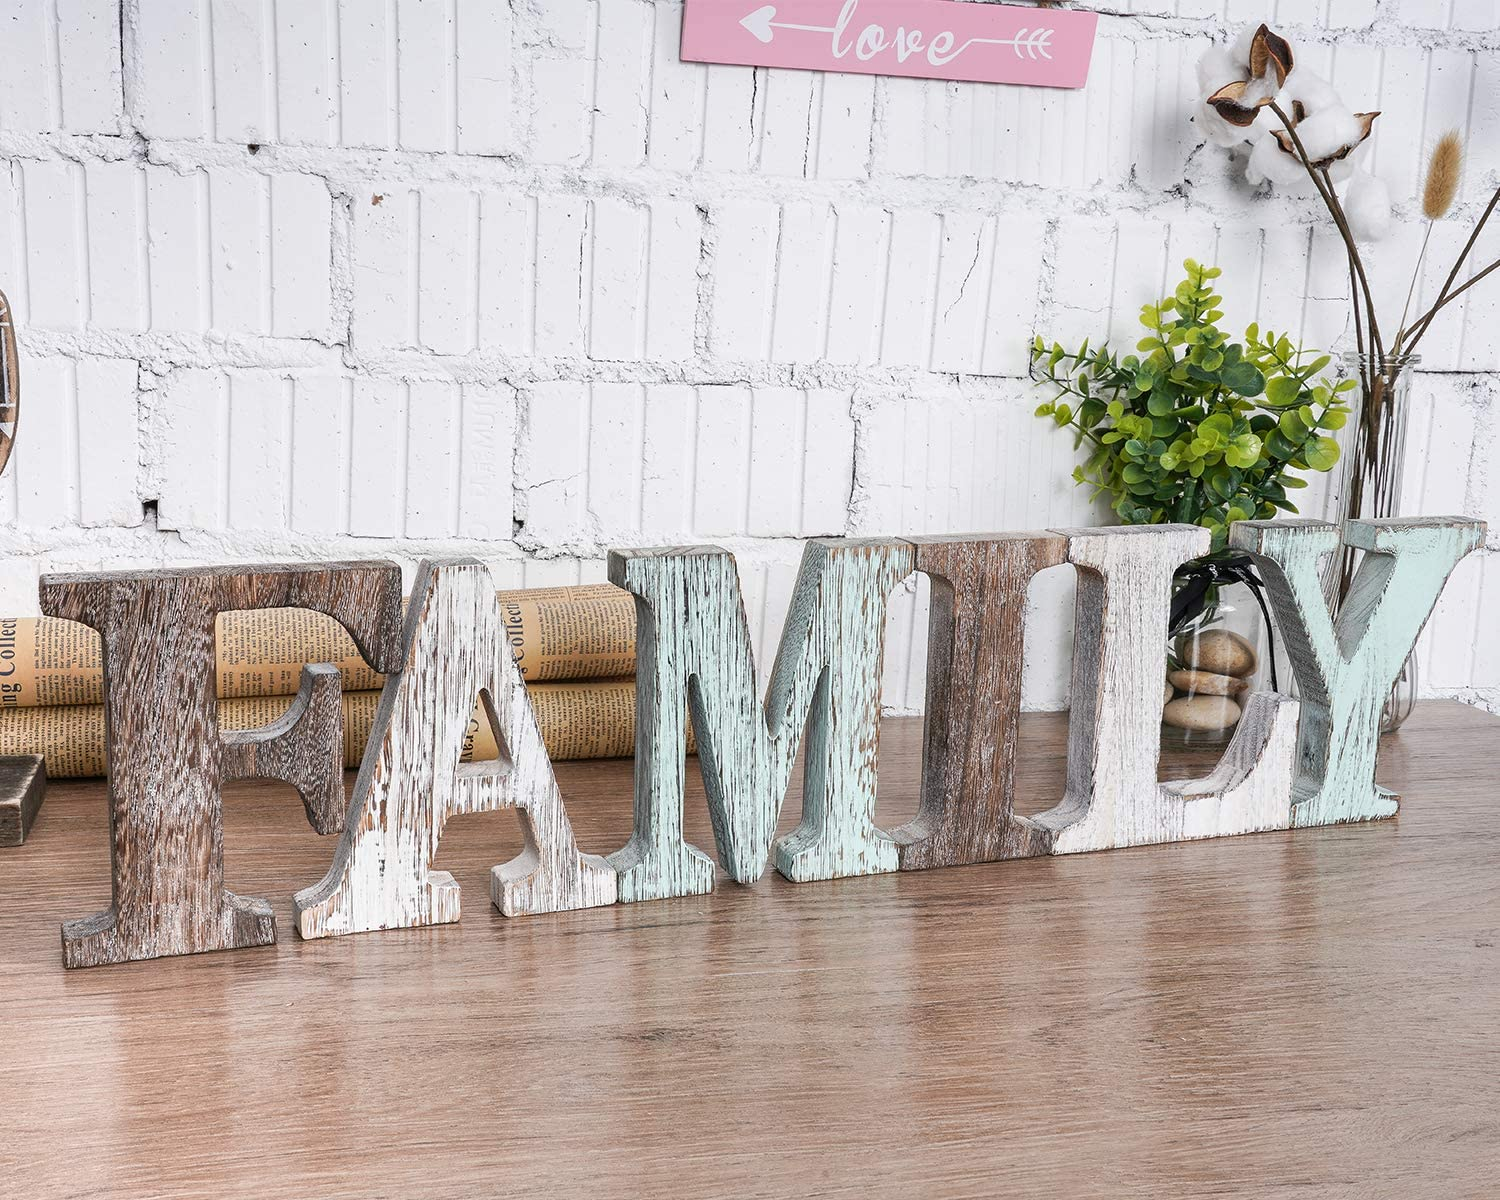 Wood Family Signs Wall Decor, Decorative Wooden Blocks Rustic Letters Cutout Farmhouse Home Decor, Multicolor, Bedroom Kitchen Living Room Table Centerpiece Words, Freestanding with Double Sided Tape